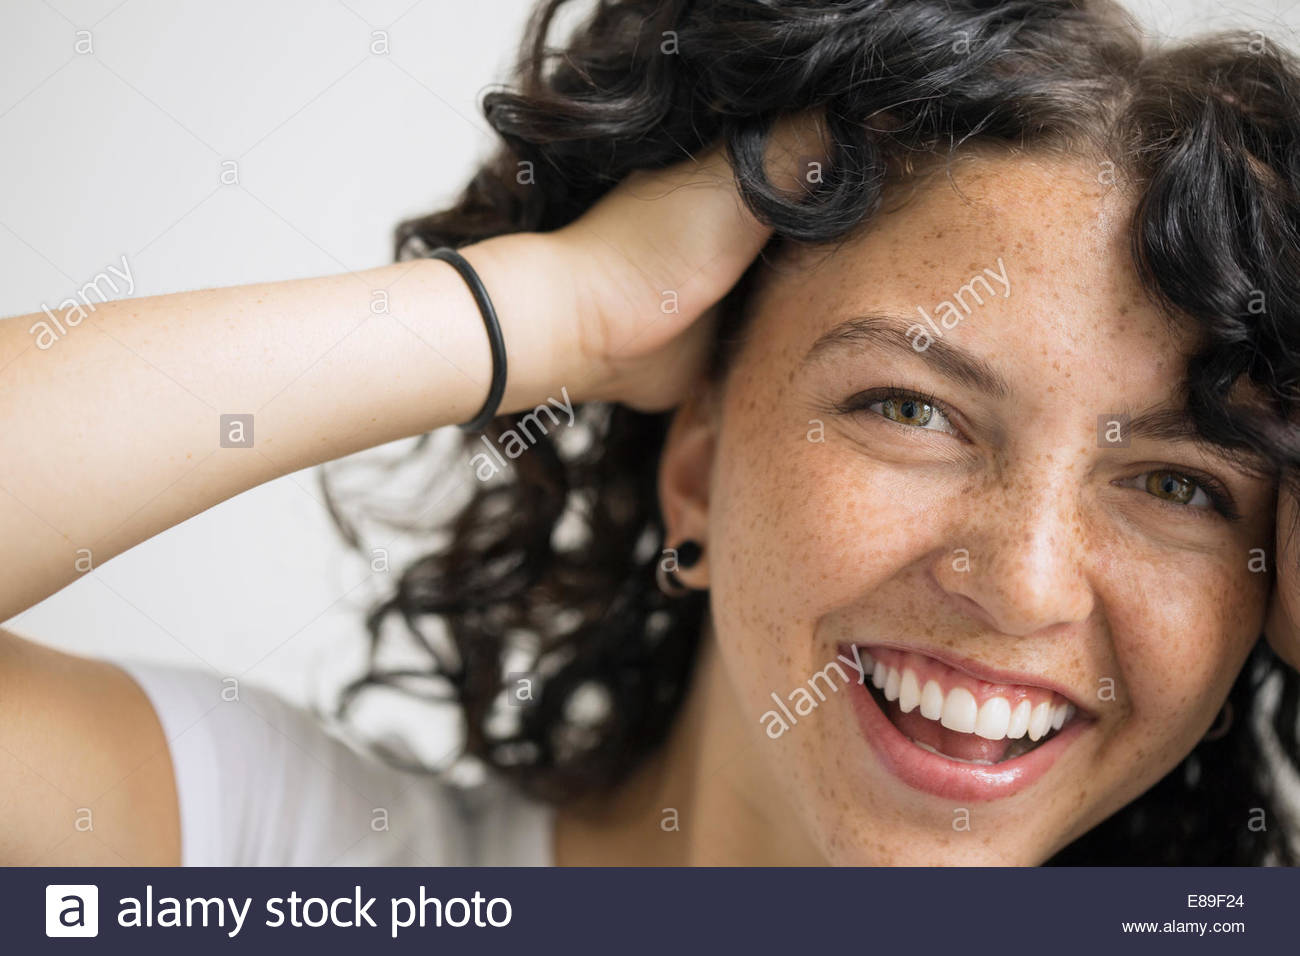 Portrait of smiling woman with hands in hair - Stock Image